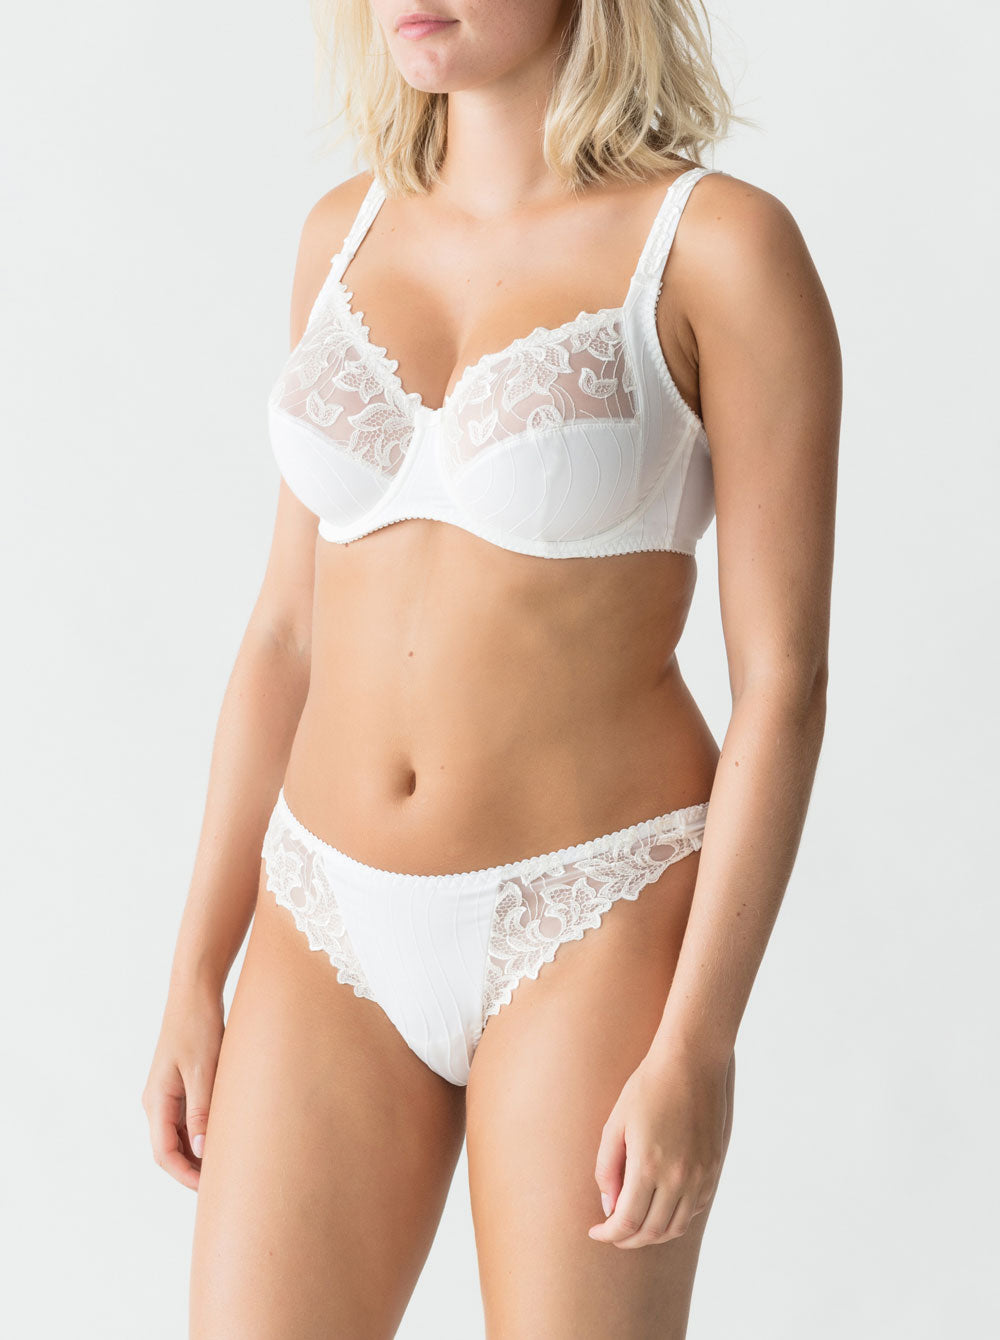 Prima Donna Deauville underwired full cup bra in Natural